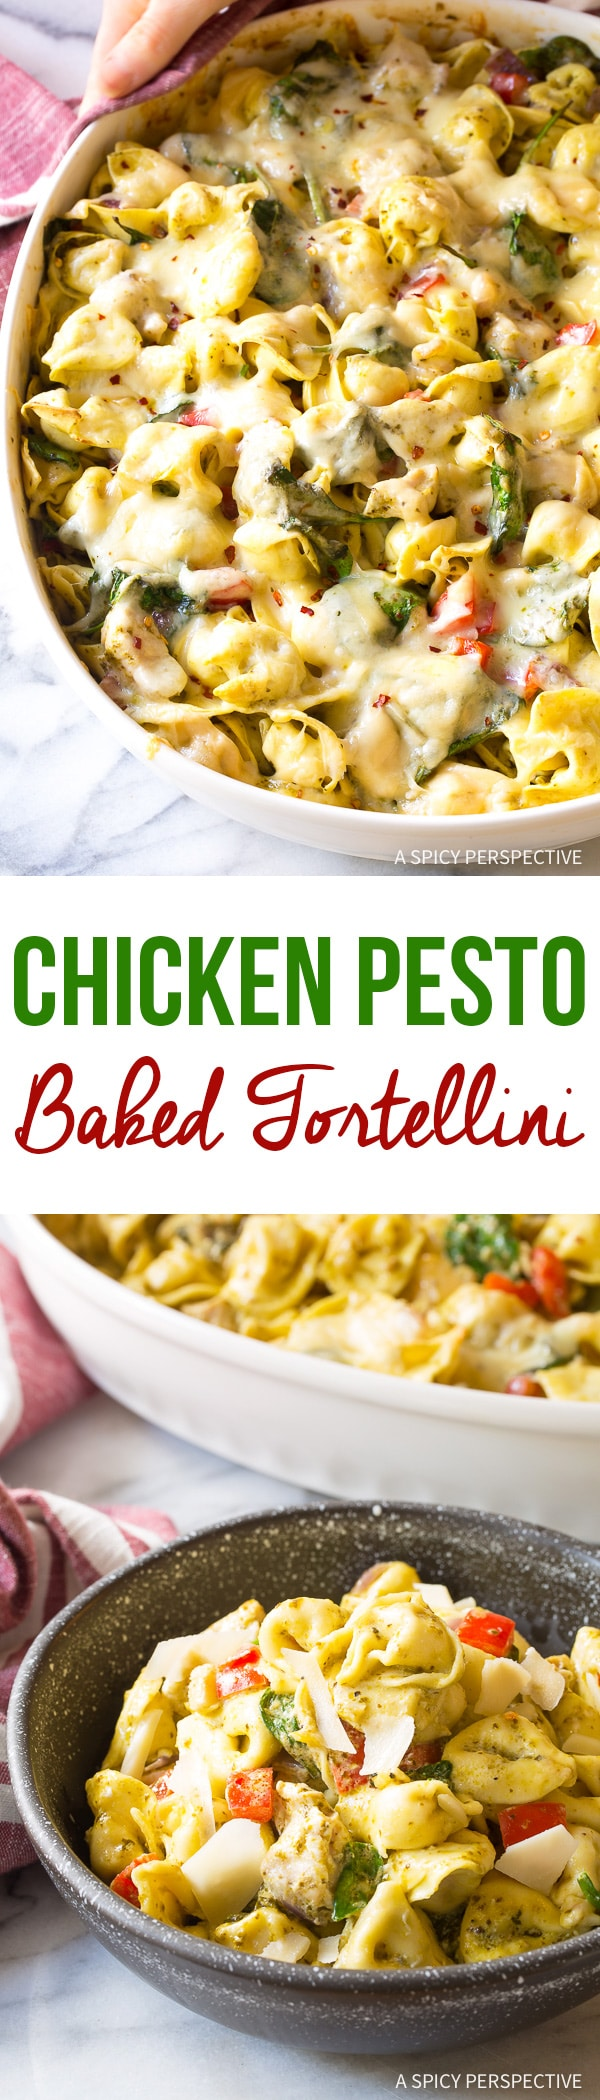 Cheesy Pesto Chicken Baked Tortellini Recipe